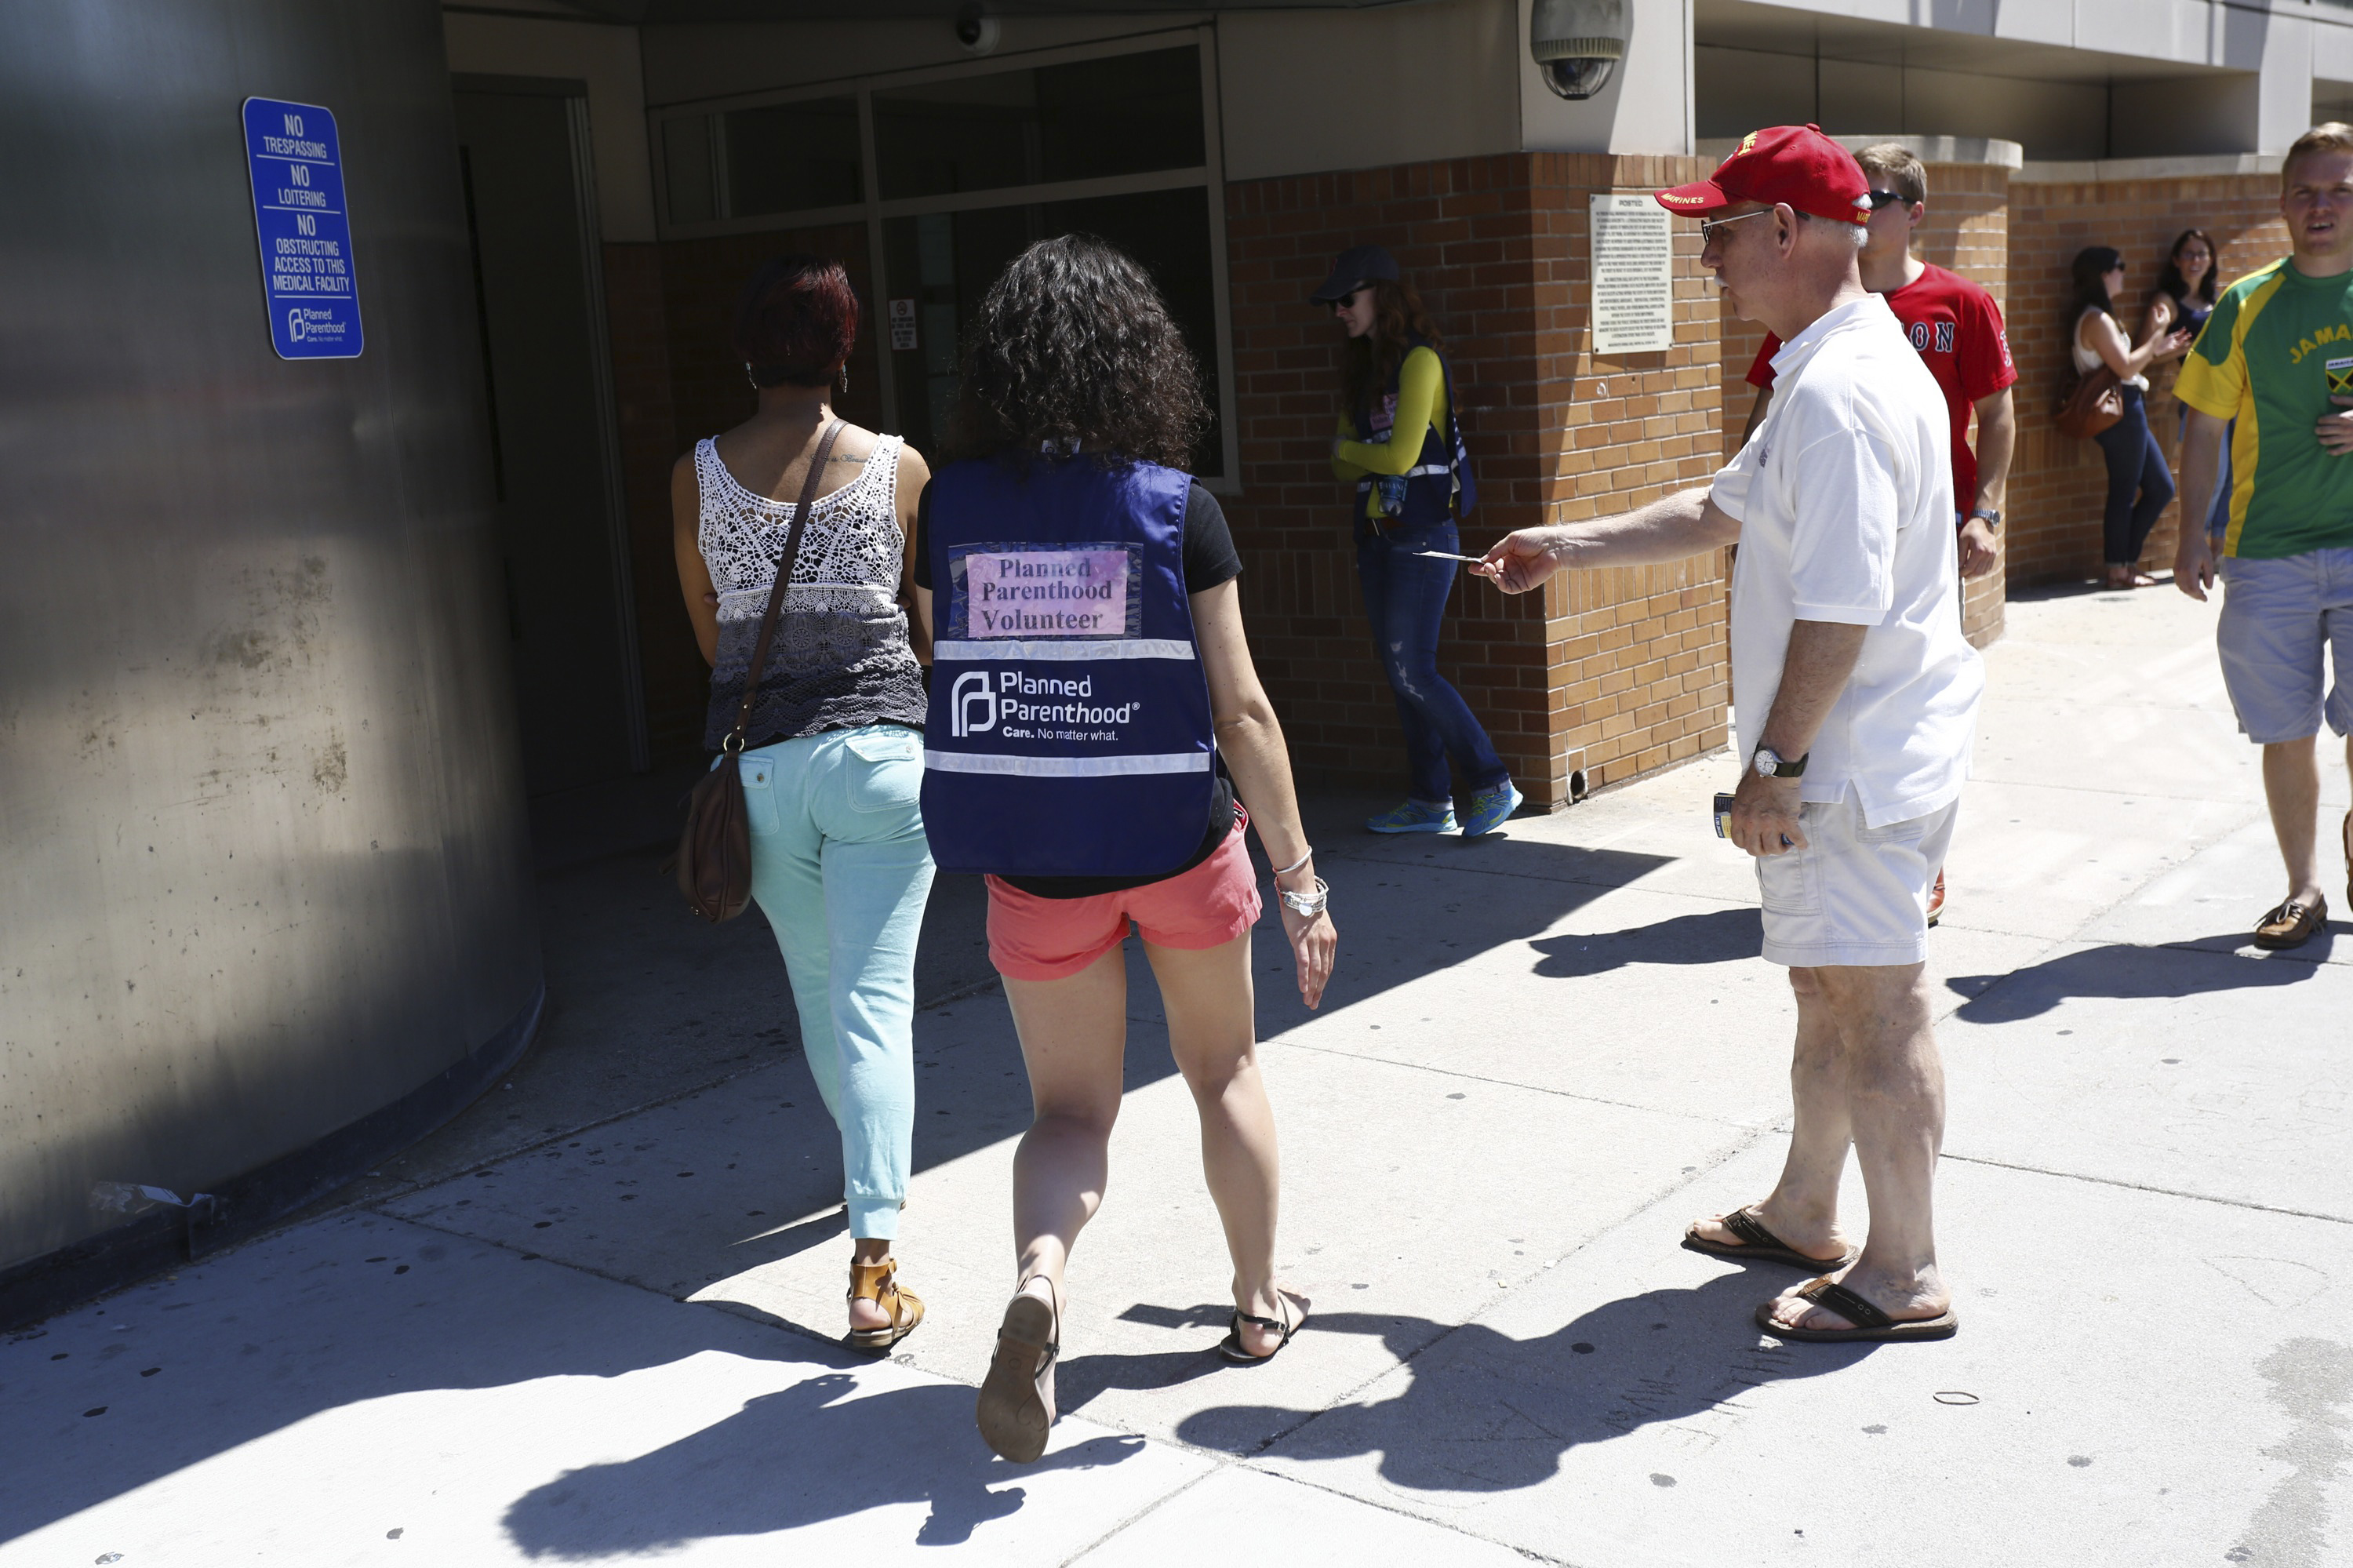 An abortion protester offers a pamphlet to a woman being escorted by a volunteer in front of a Planned Parenthood clinic in Boston, Massachusetts